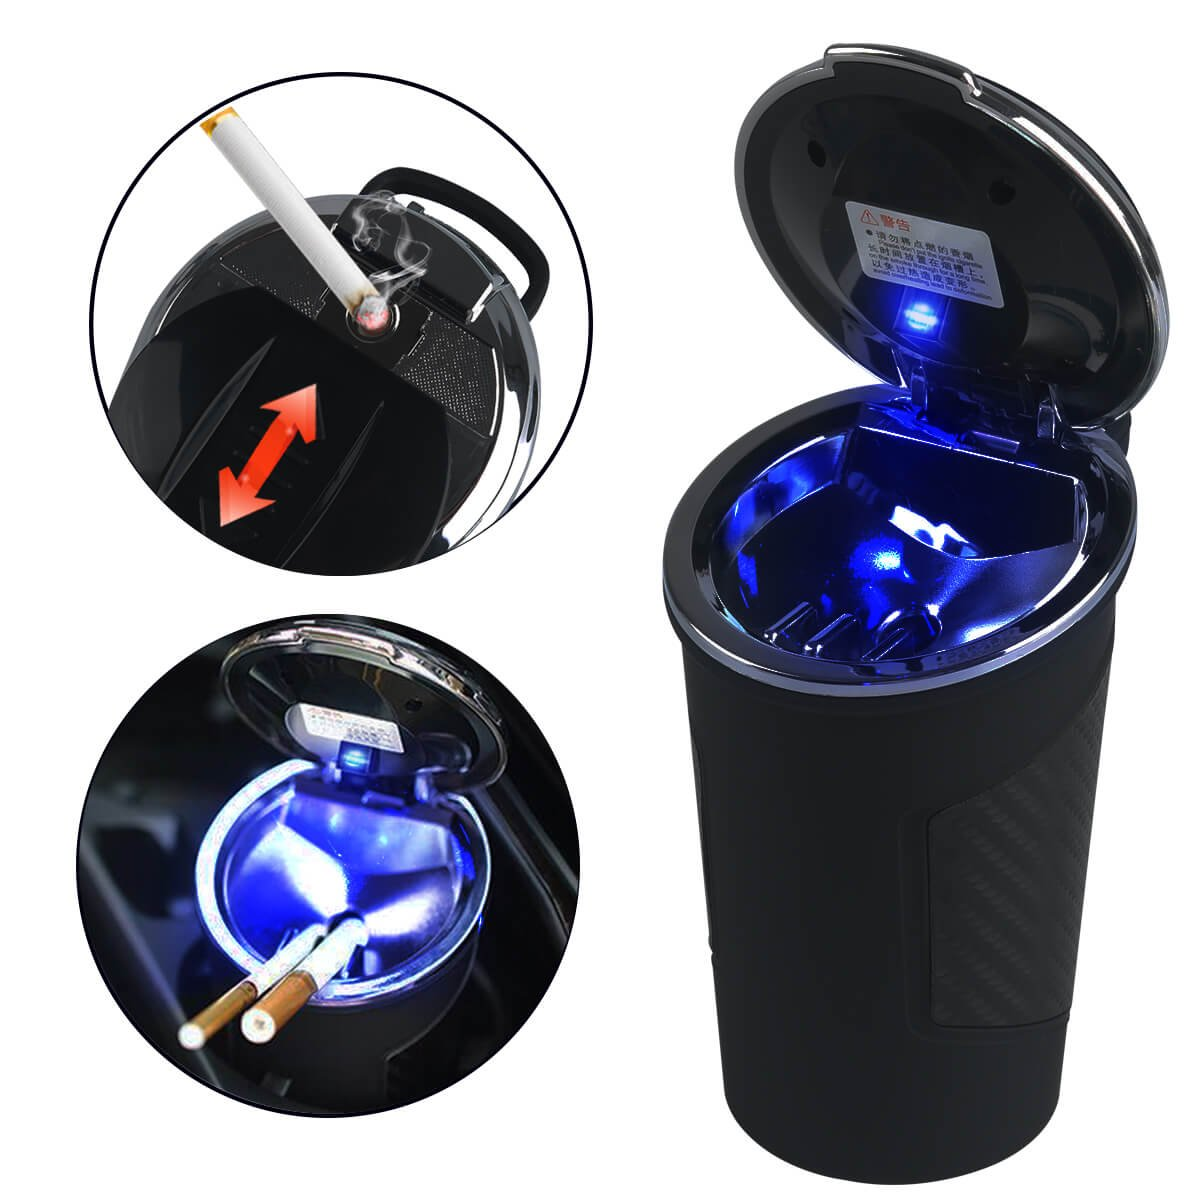 Amazing Slide Lighter in Car Ashtray with Blue Led Light for Most Car Cup Holder, Portable Black Cup by RCRunning